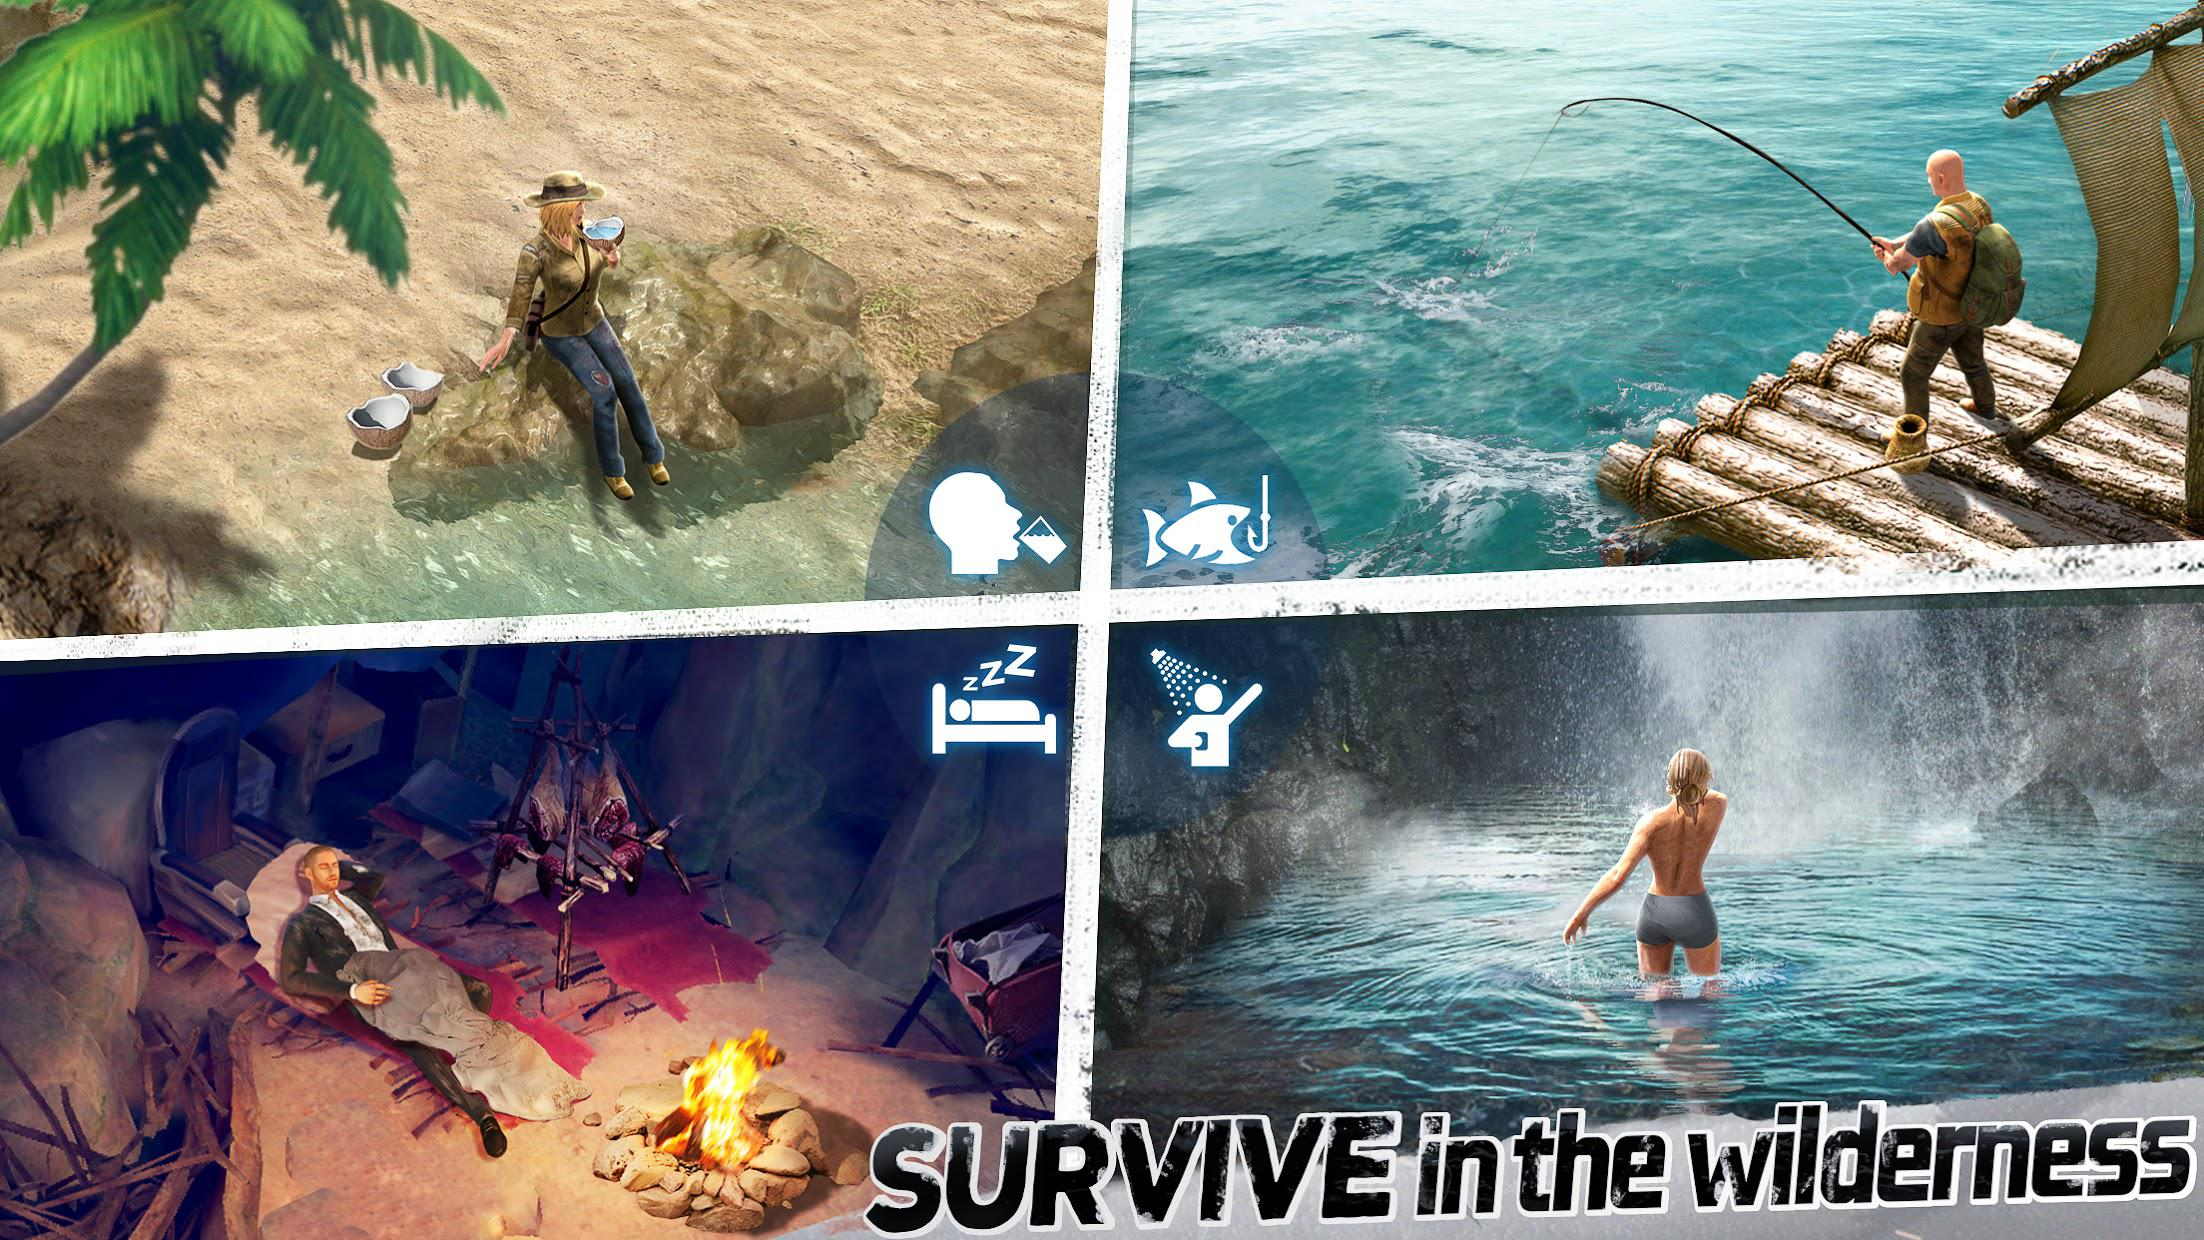 LOST in Blue: Survive the Zombie Islands 游戏截图3